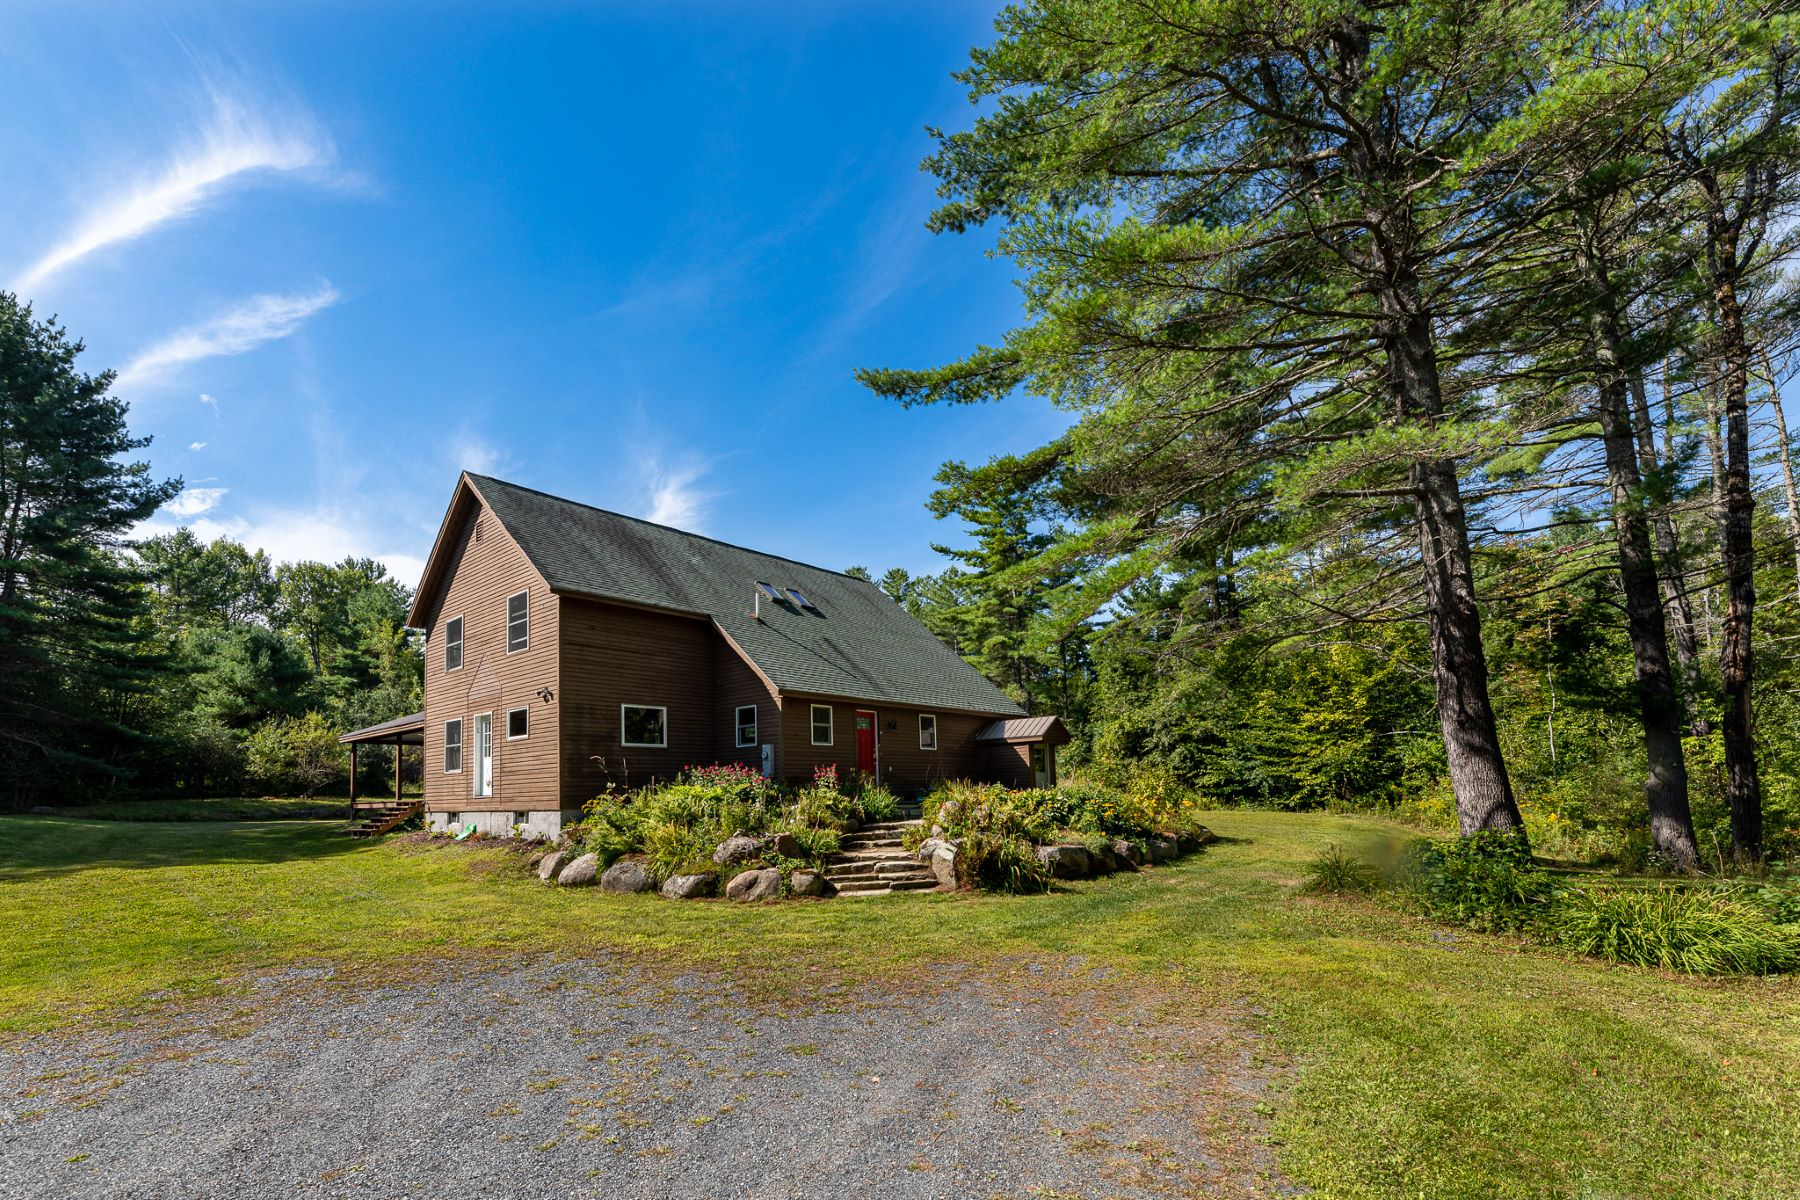 Single Family Homes for Sale at 909 Goulden Ridge Road Weathersfield, Vermont 05030 United States